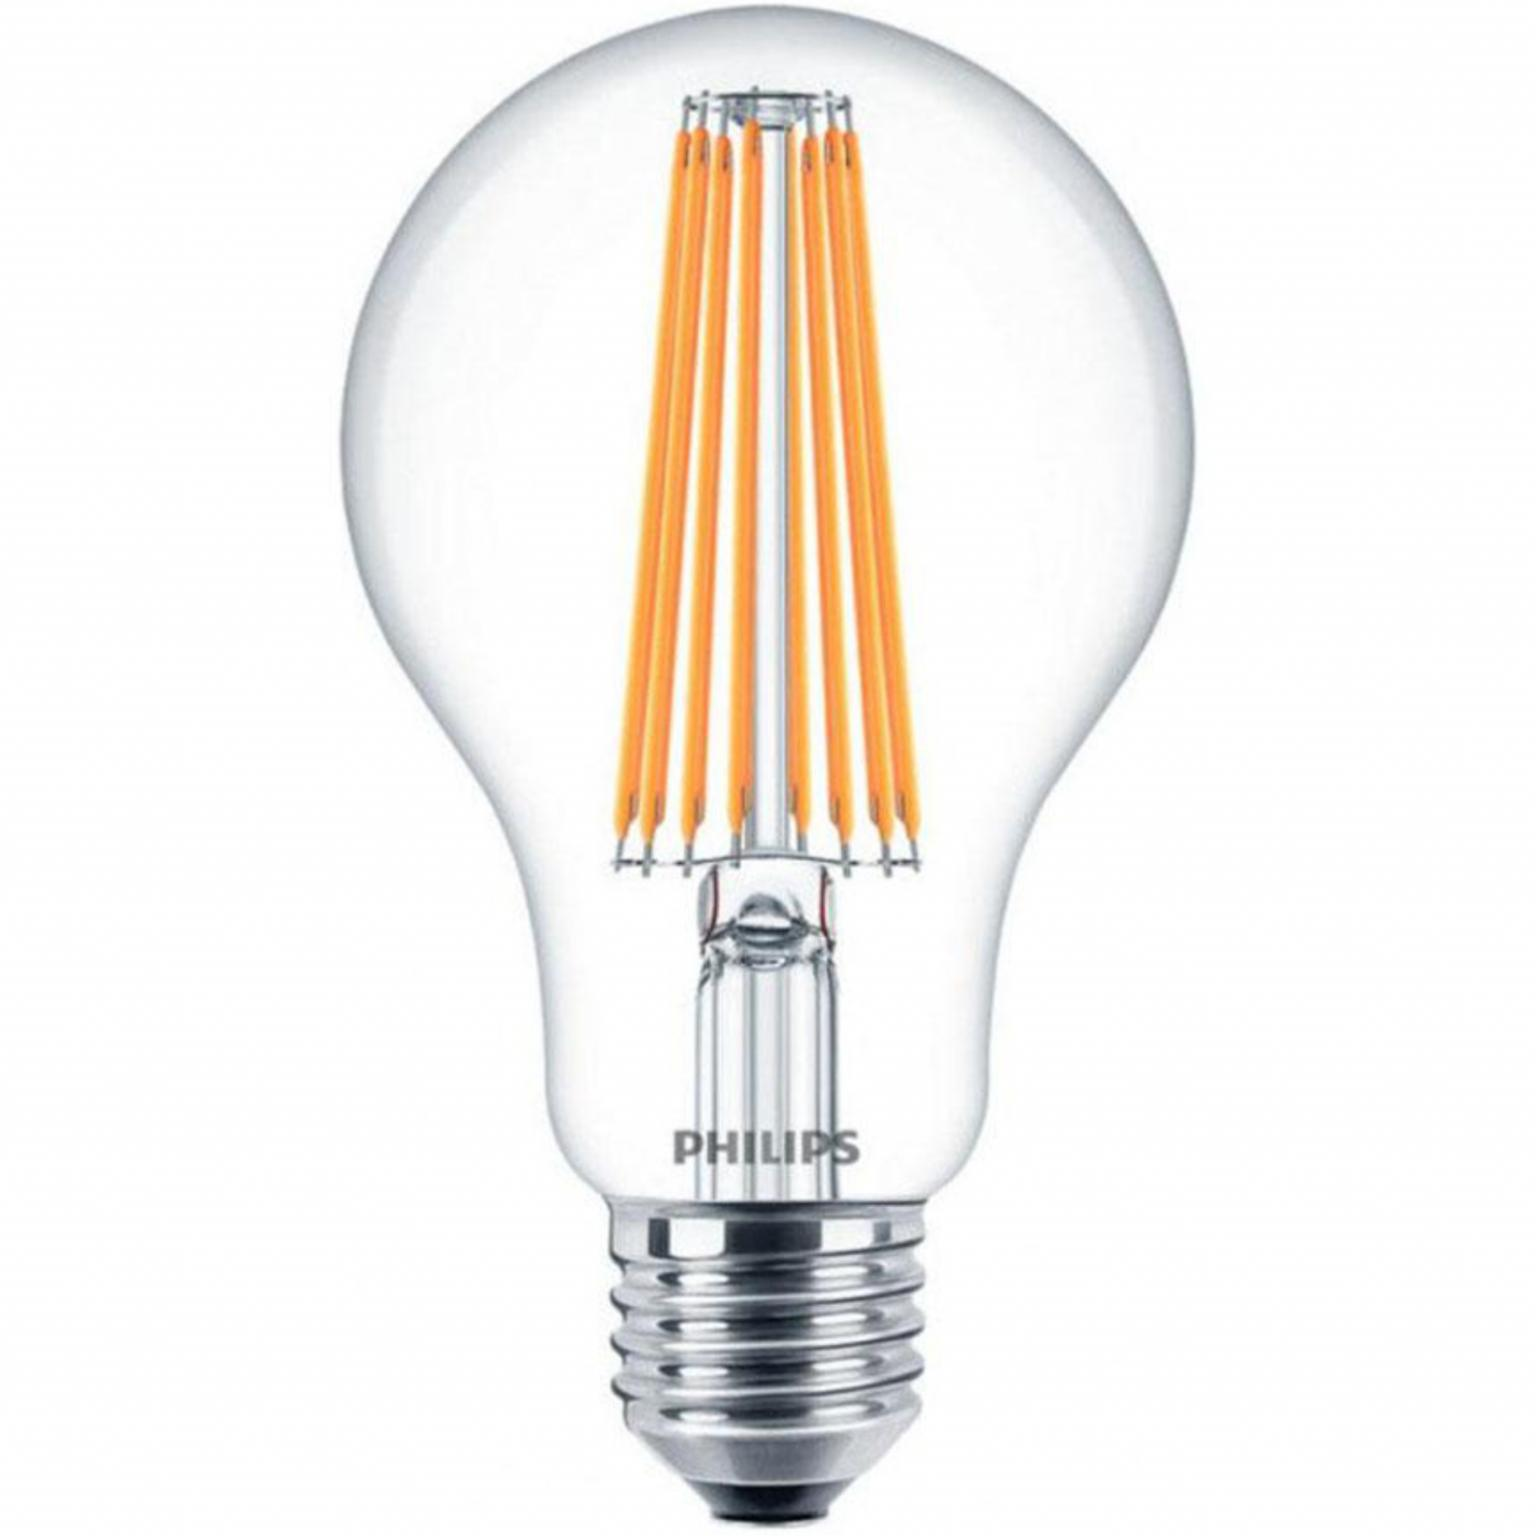 Filament Lamp - 1500 Lumen - Philips